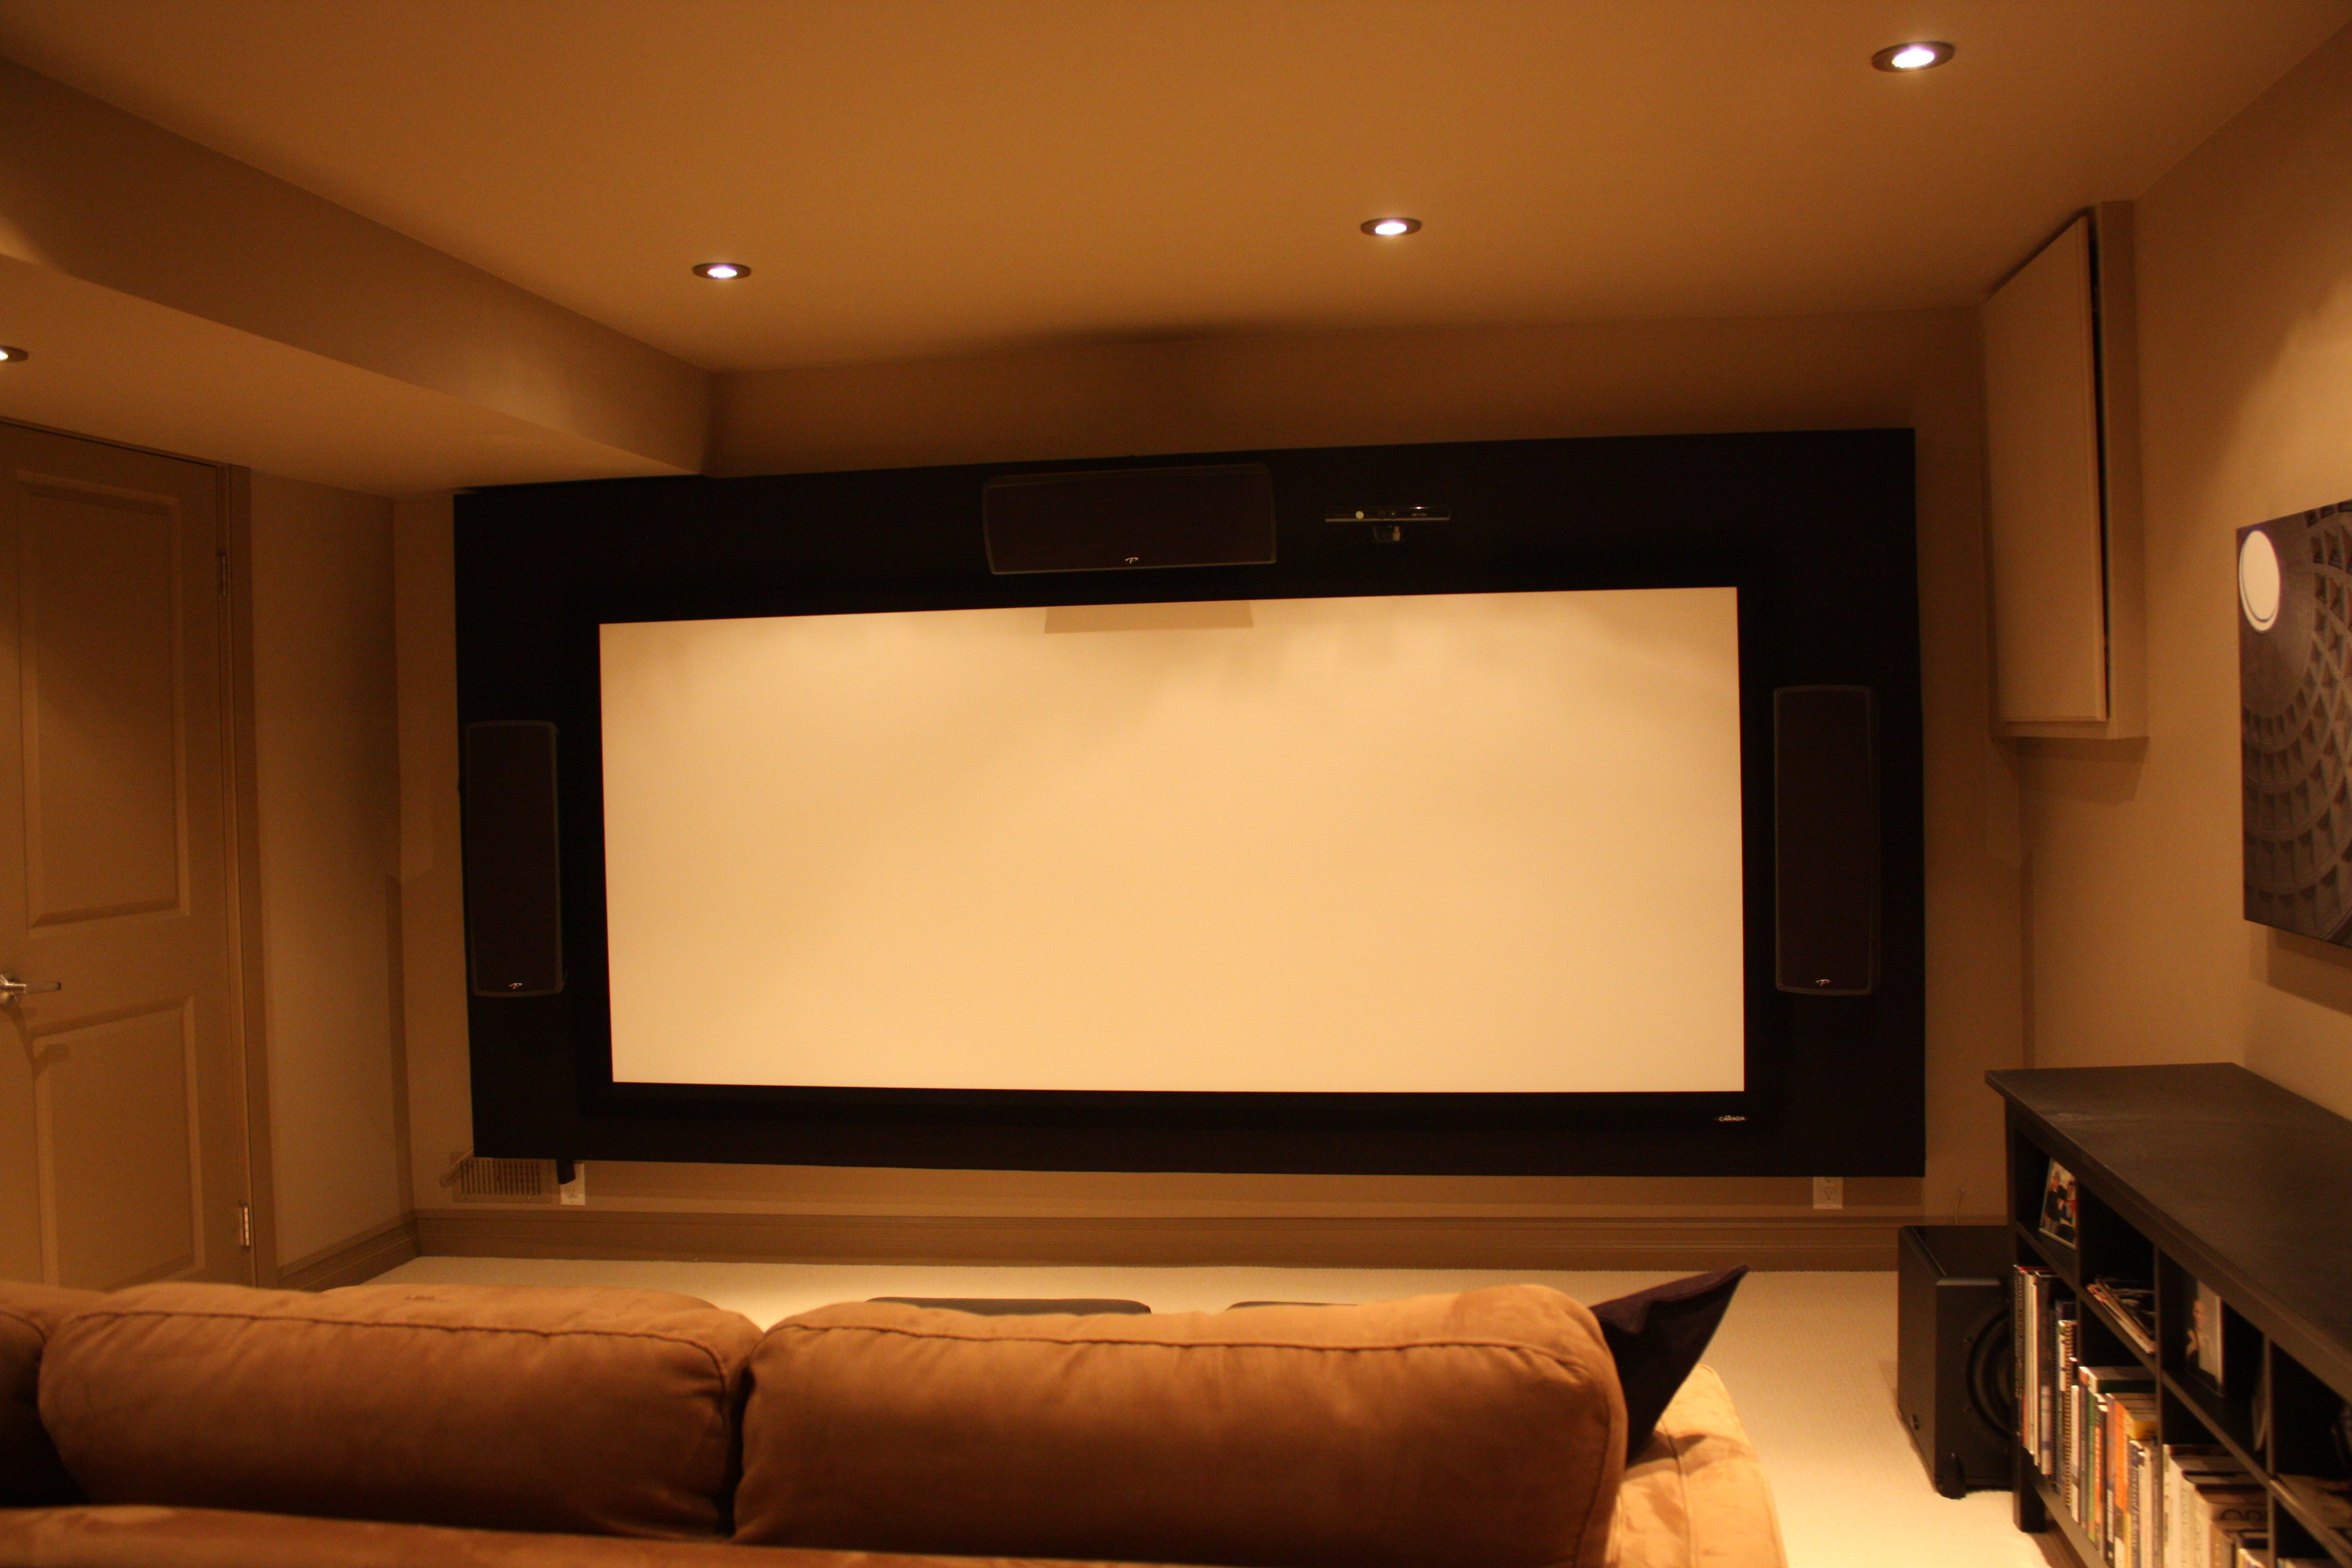 Our Simple Home Theater for Three - AVS Forum | Home Theater ...